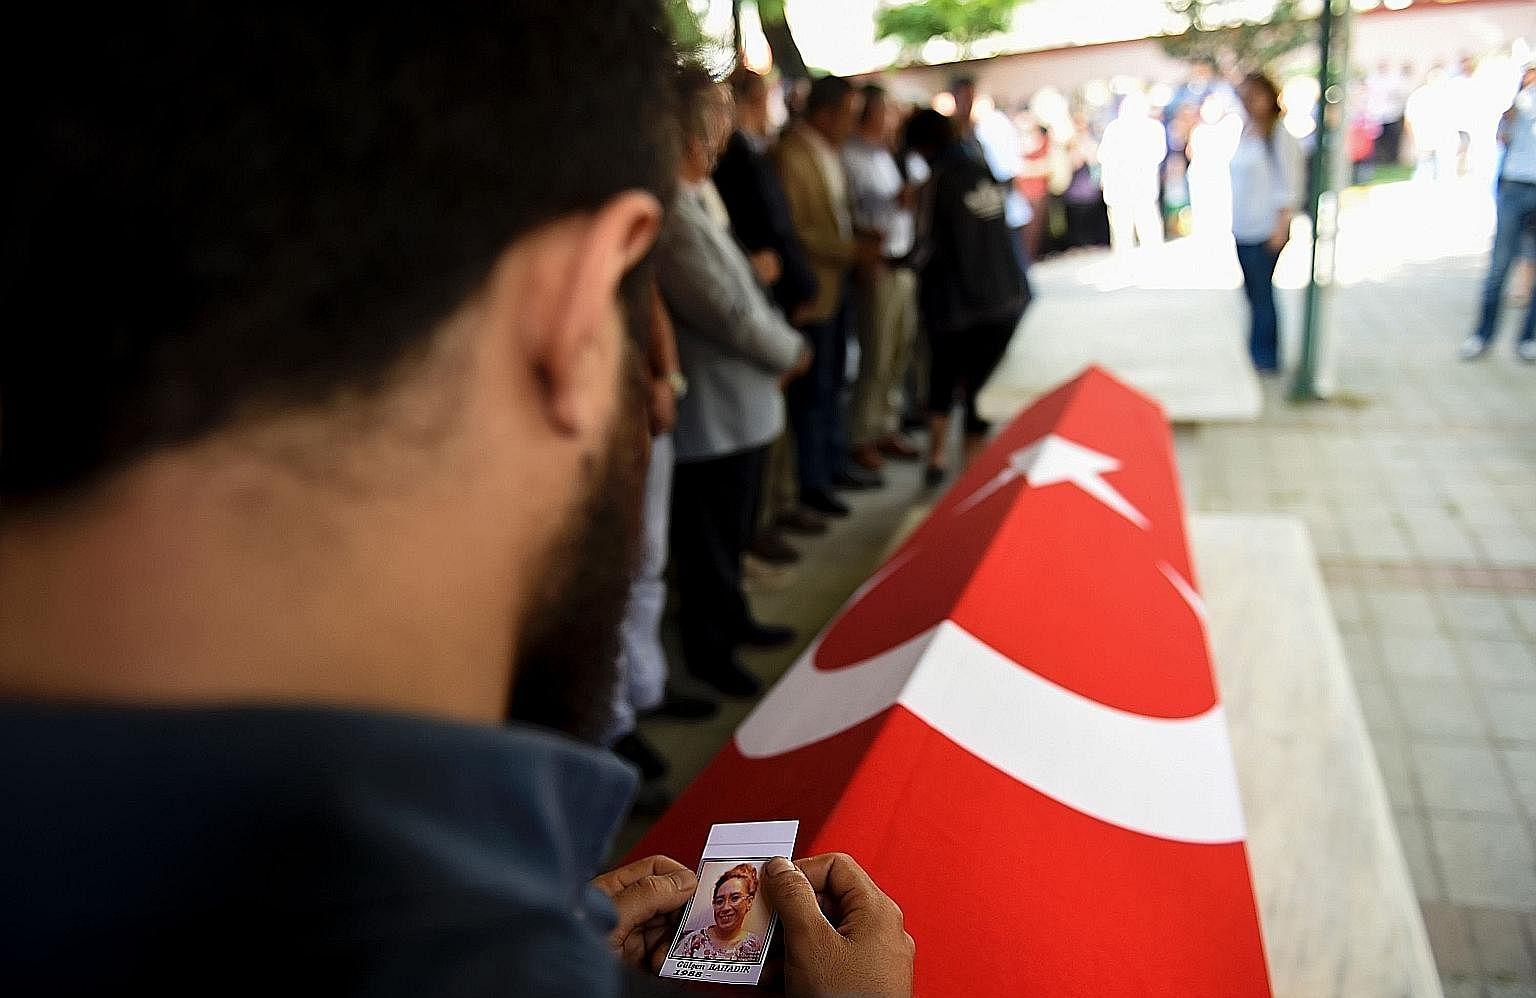 A friend of air hostess Gulsen Bahadir, who was killed during Tuesday night's attacks on Ataturk airport, with her photo next to the coffin during the funeral in Istanbul. The assault on the airport is the latest in a series of horrible traumas in Tu